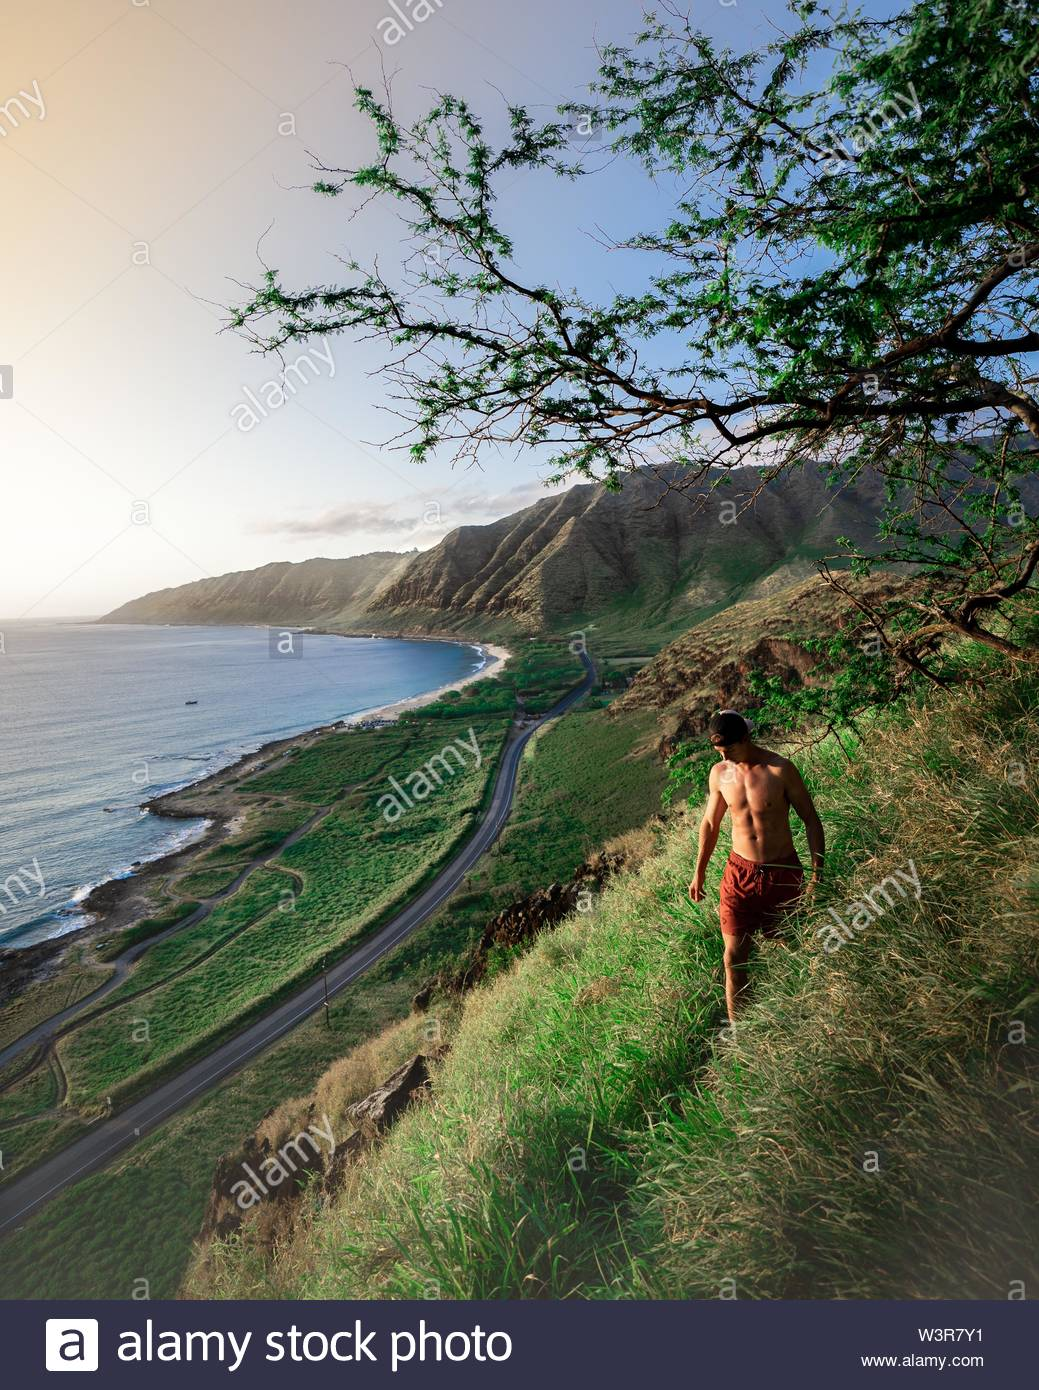 A male walking on a steep green hill with the beautiful sea and hills in the background - Stock Image